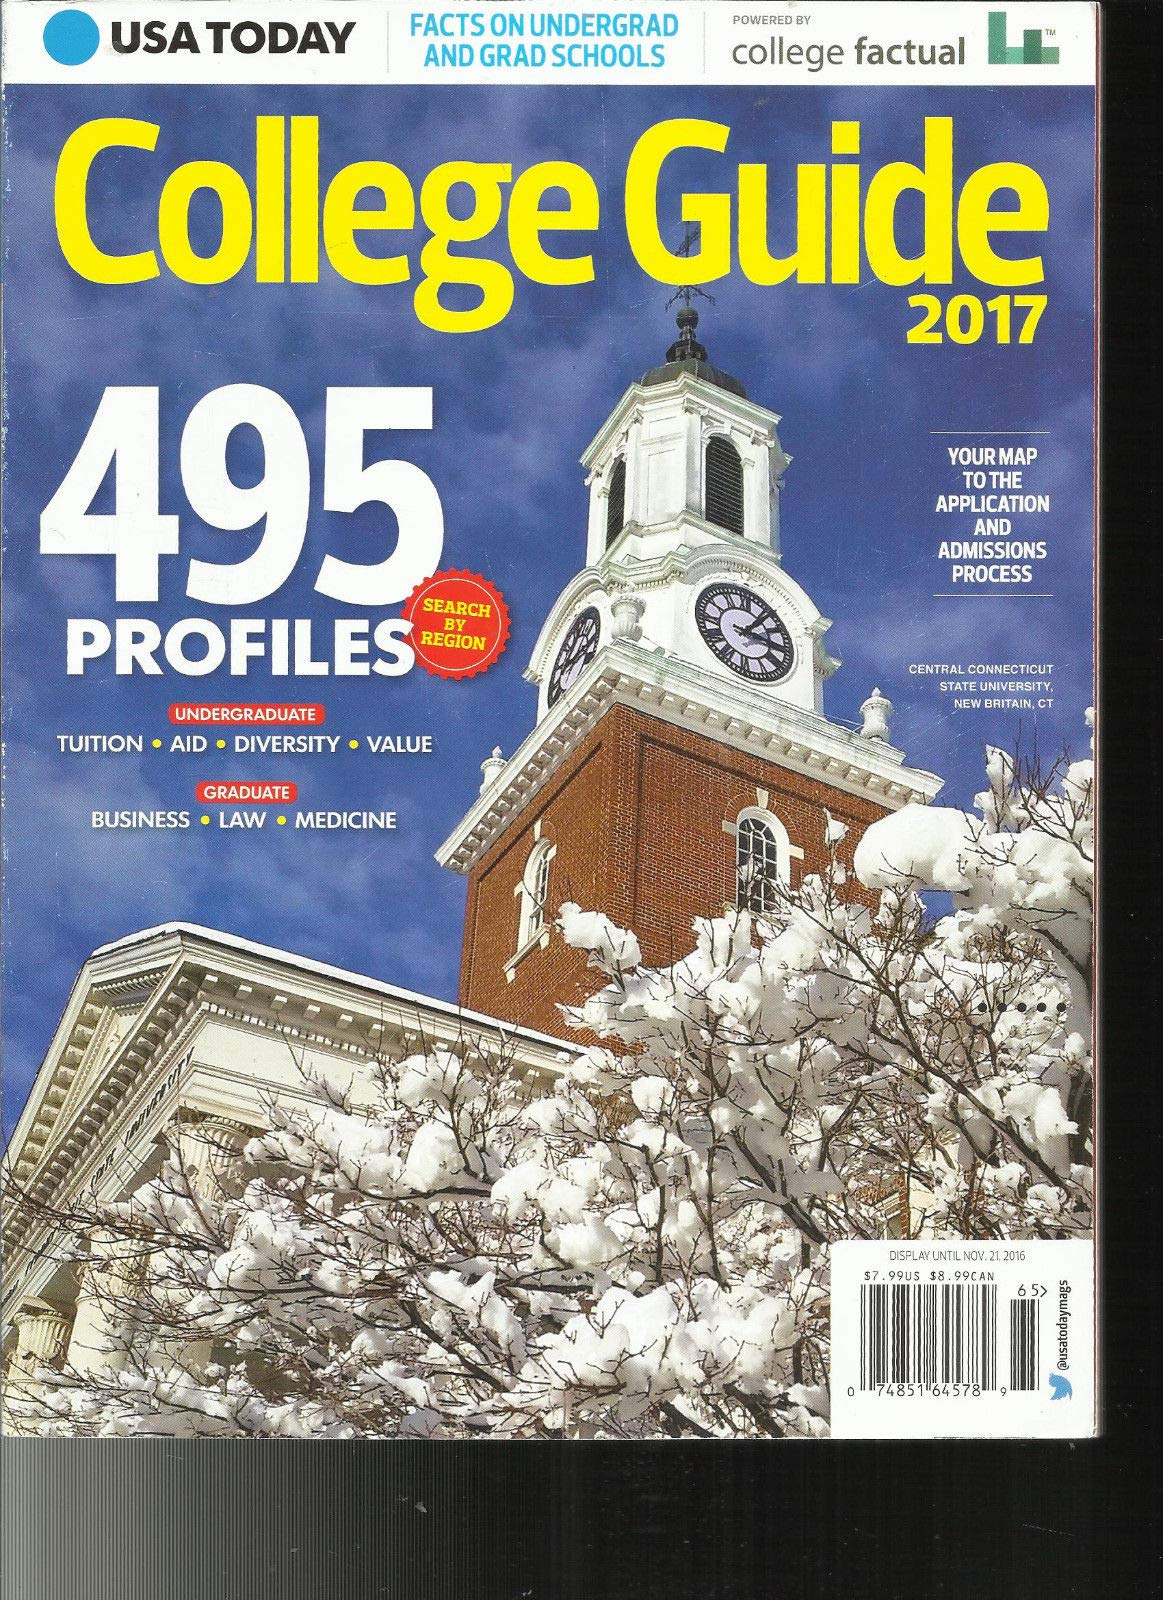 USA TODAY MAGAZINE, COLLEGE GUIDE, 2017 495 PROFILES ISSUE, 2016 by Generic (Image #1)